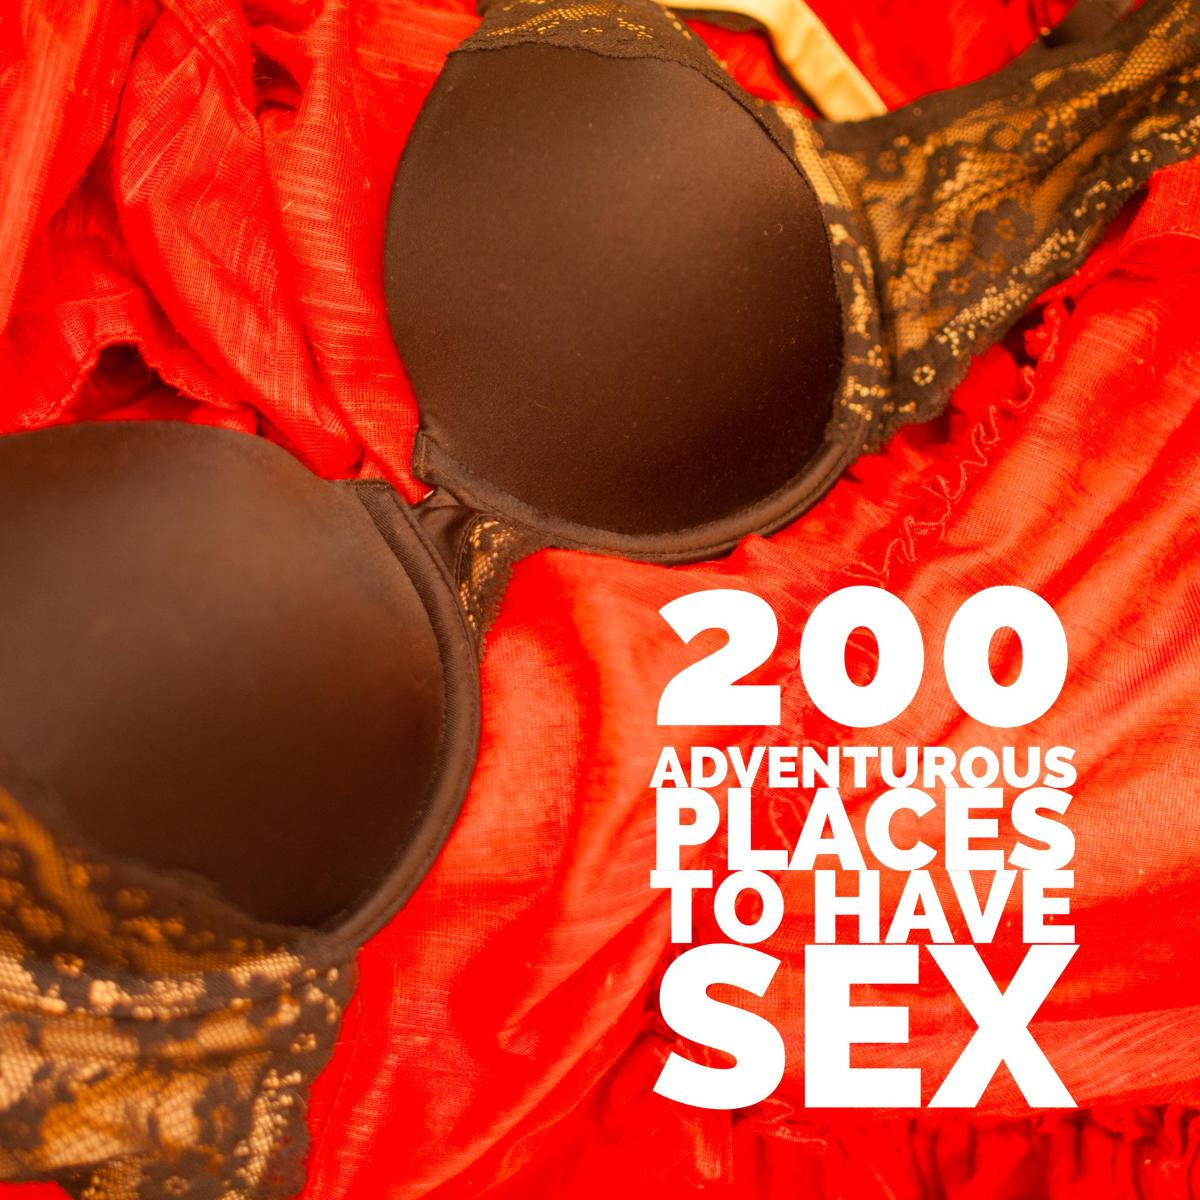 Crazy sex places and pictures